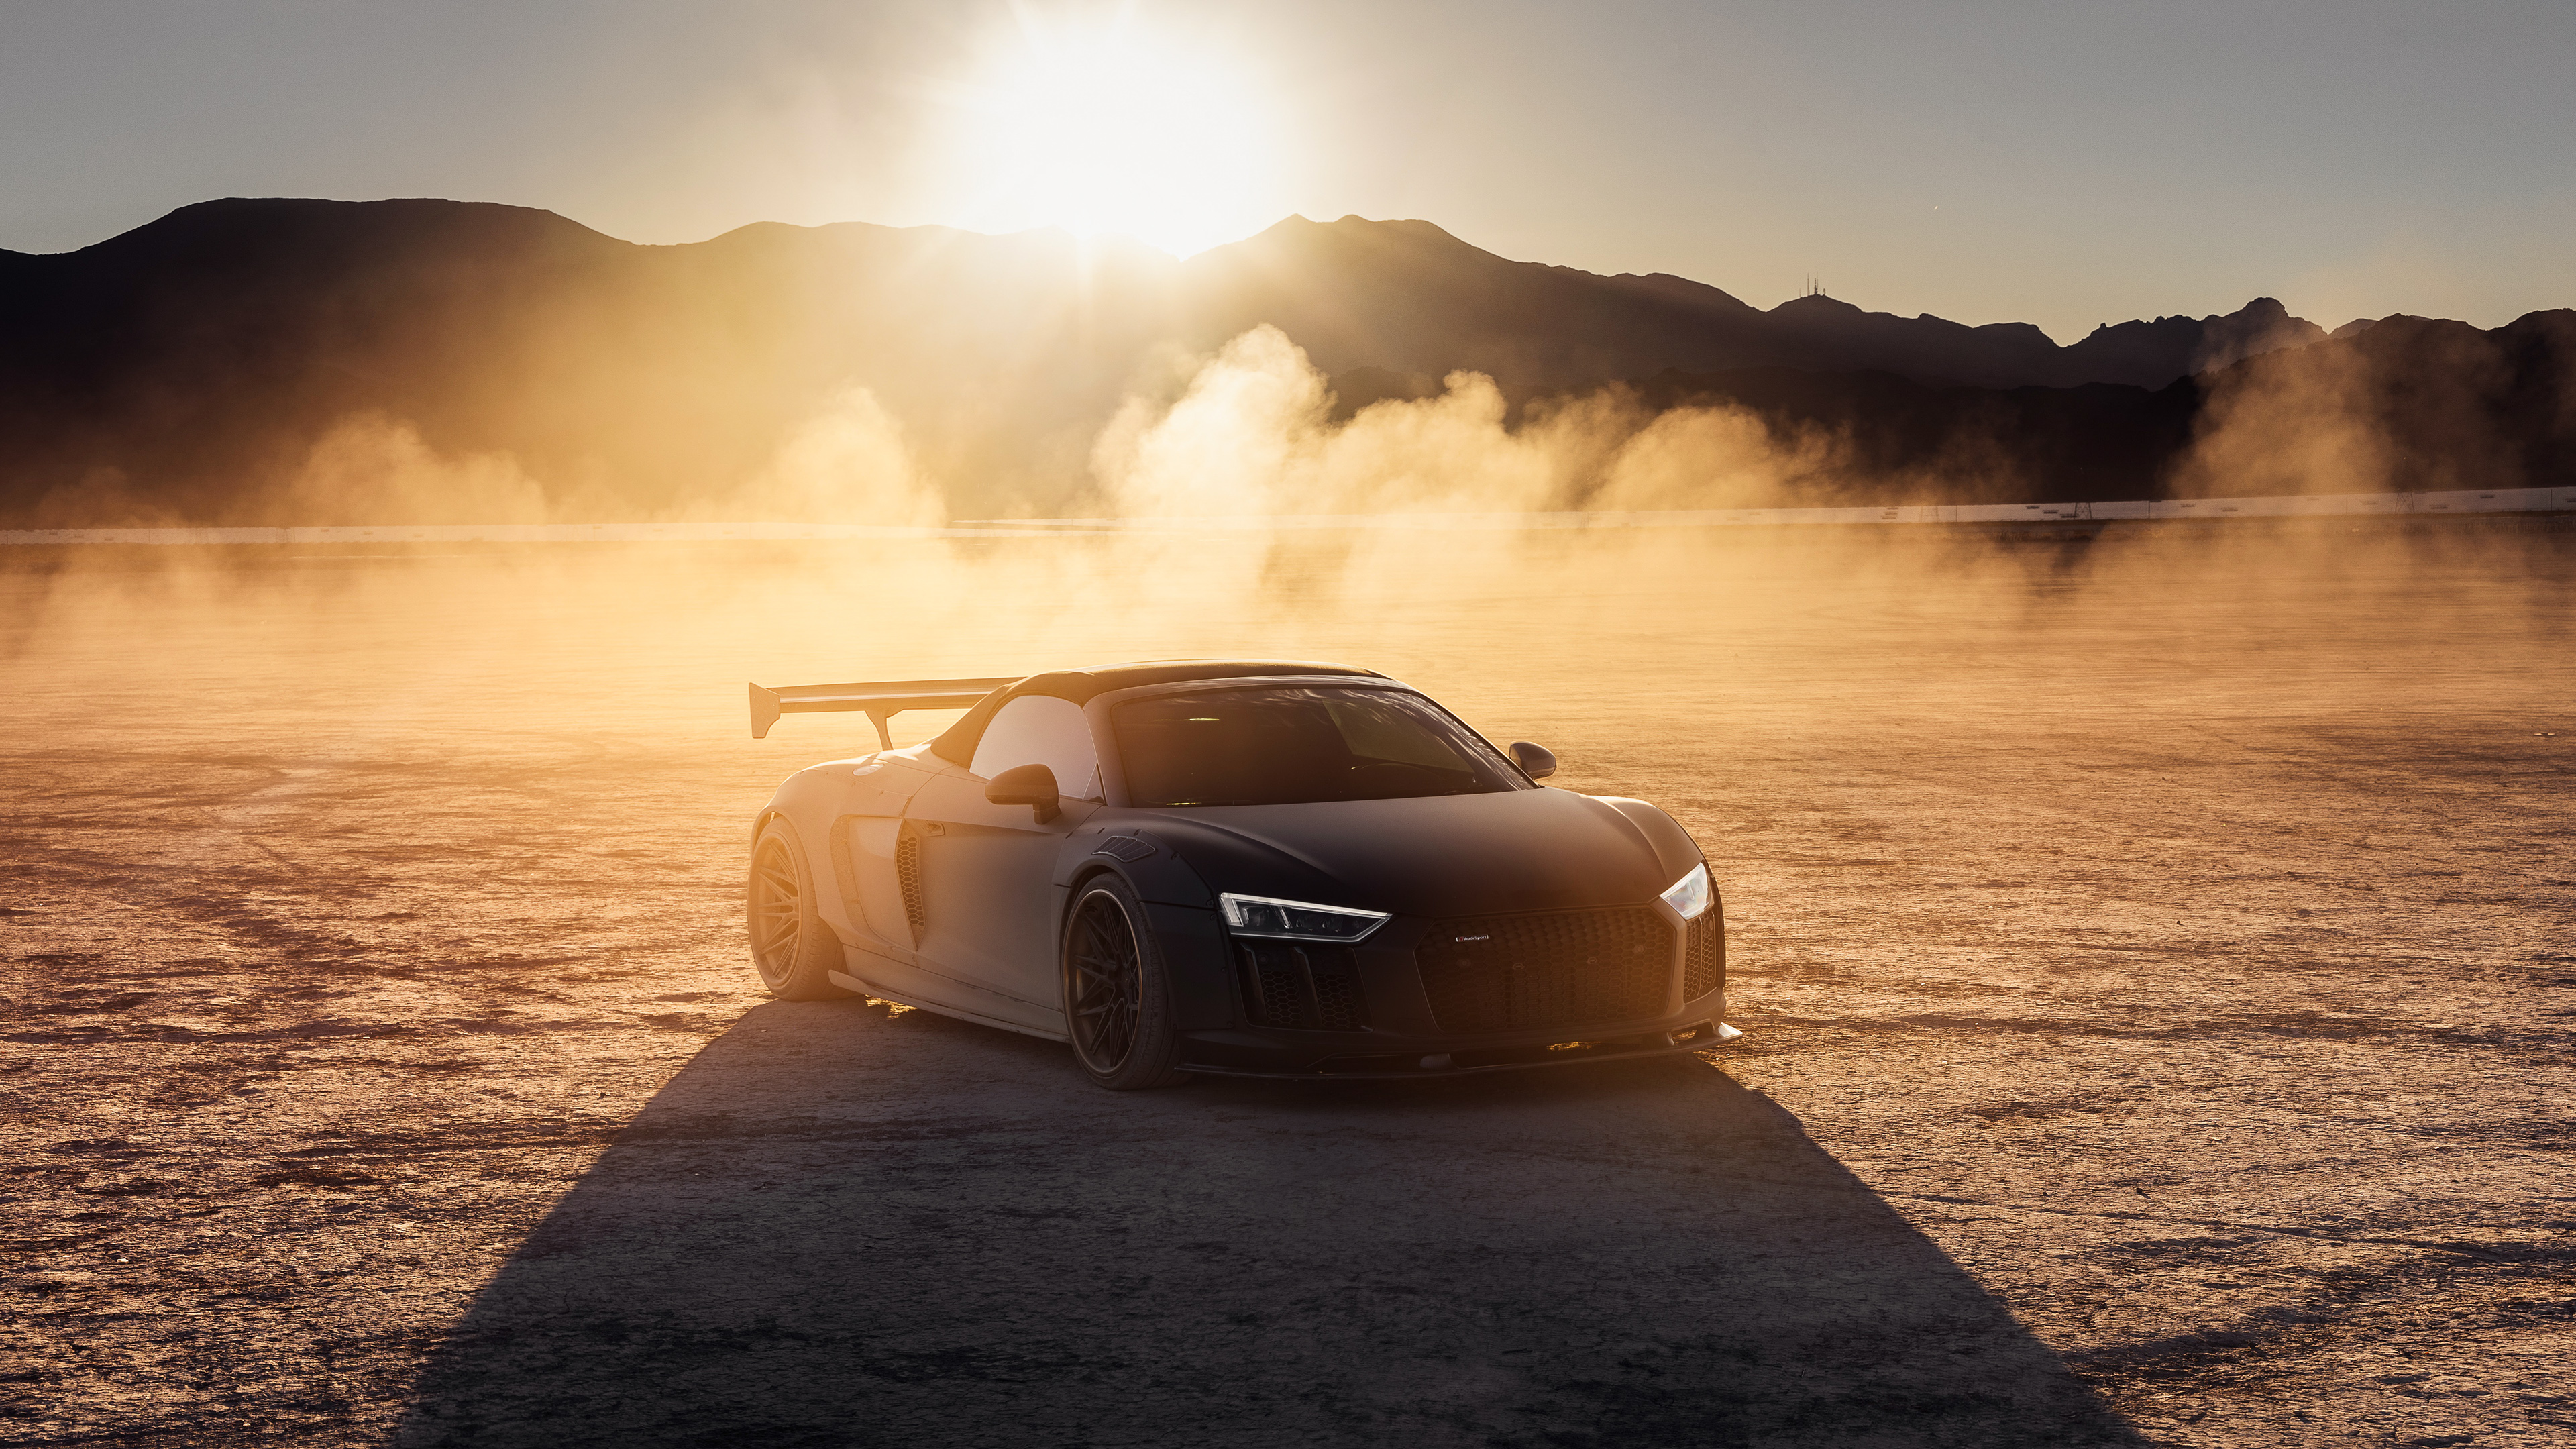 audi r8 on the vegas dry lake bed 4k 1620169614 - Audi R8 On The Vegas Dry Lake Bed 4k - Audi R8 On The Vegas Dry Lake Bed 4k wallpapers